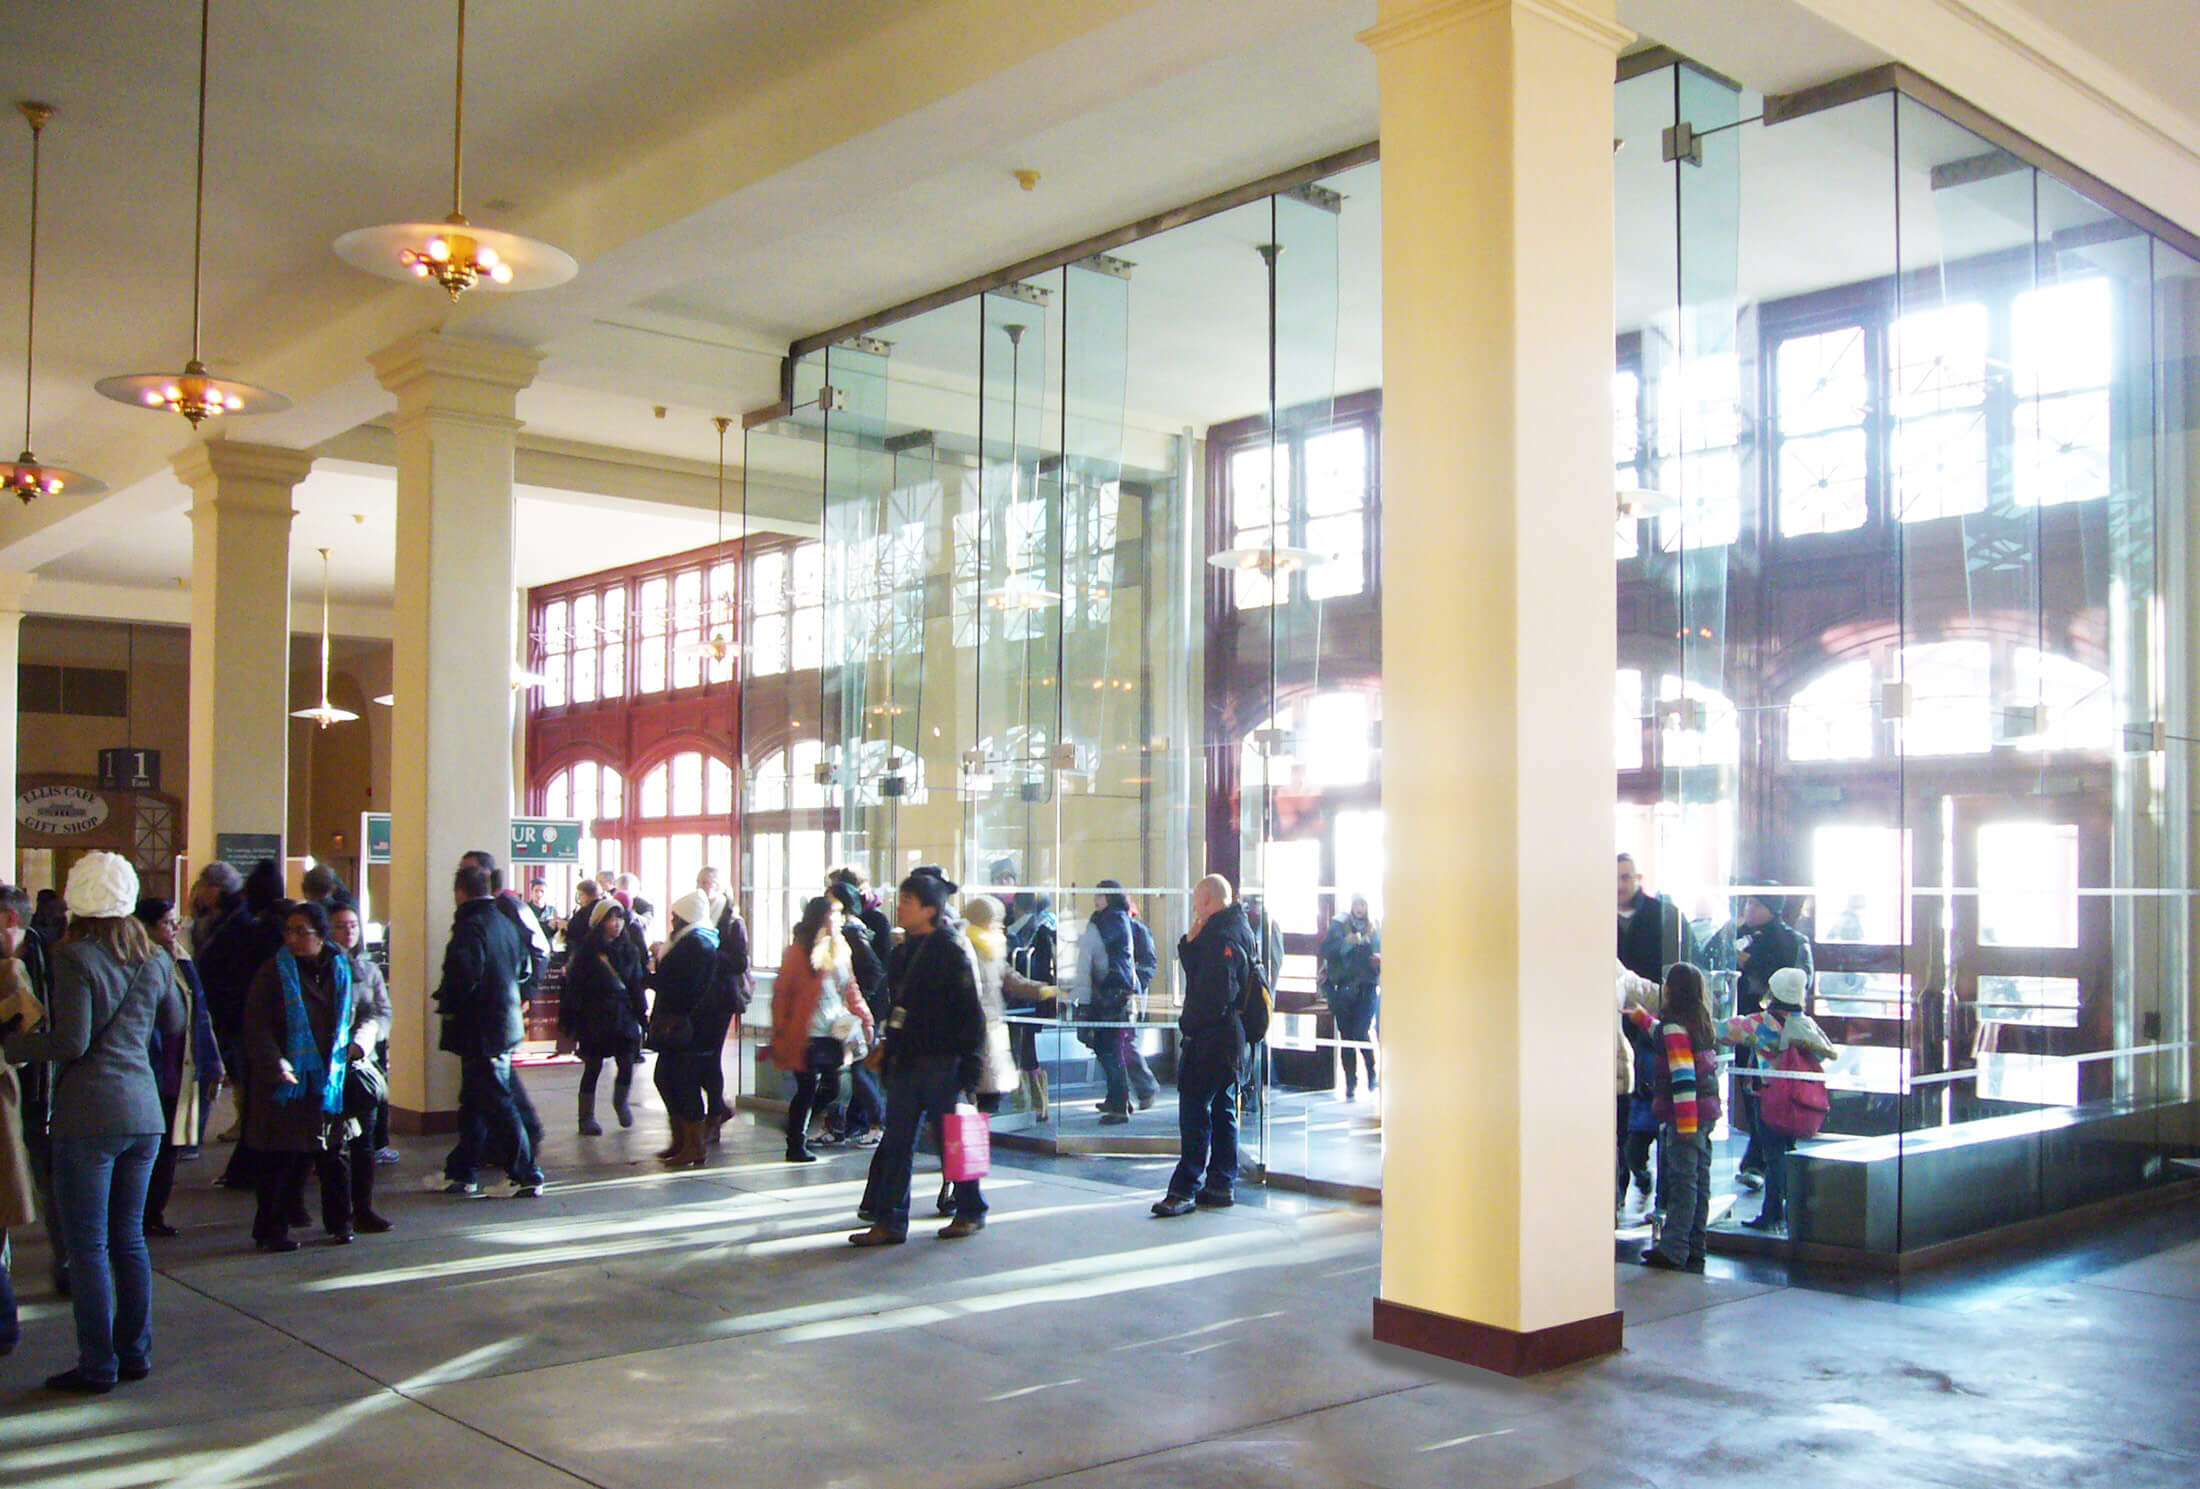 Glass entrance vestibule behind historic facade, with many people coming inside.